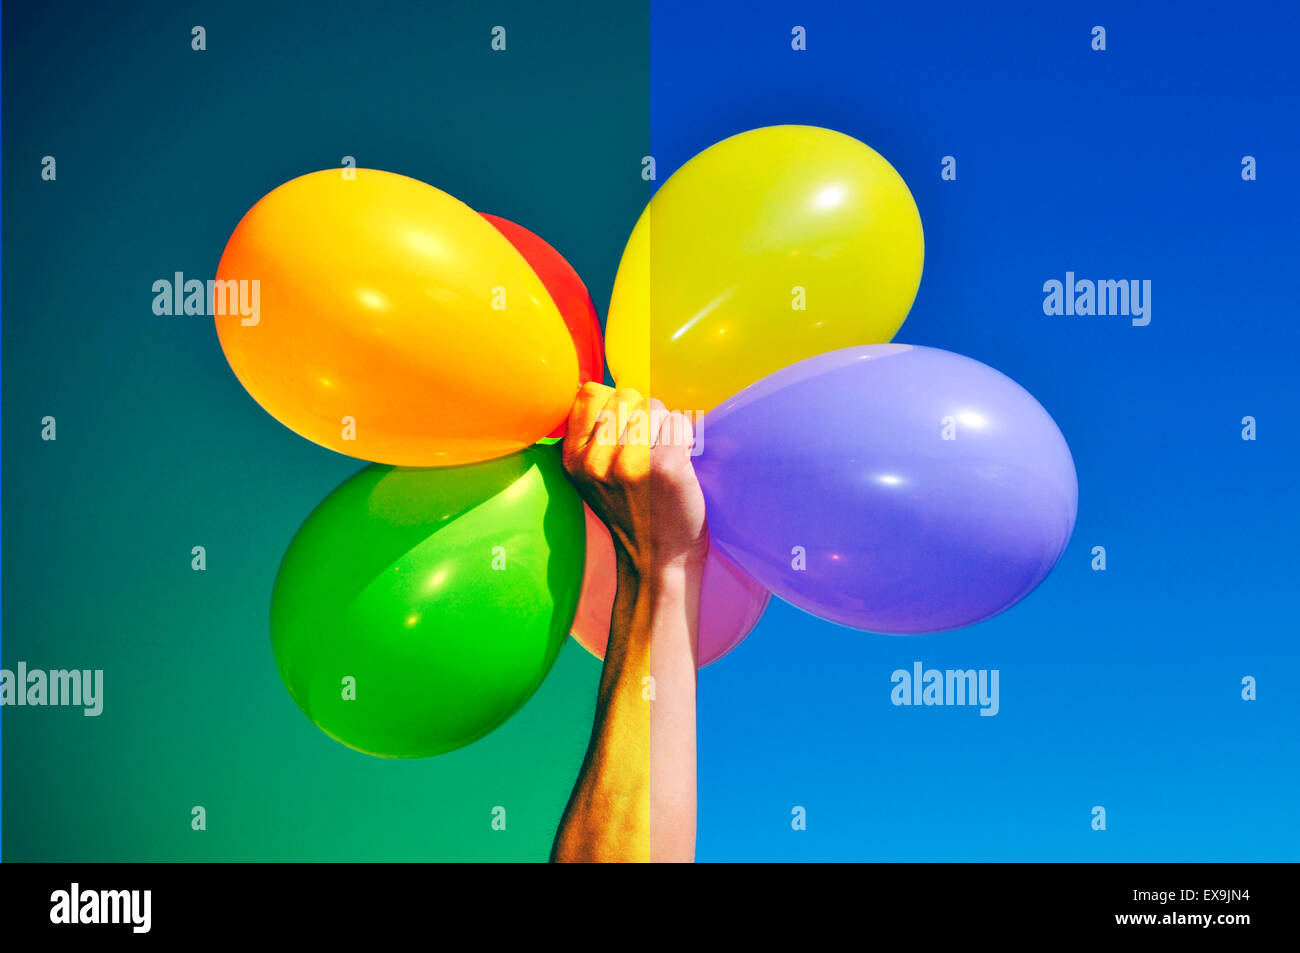 man holding a bunch of balloons of different colors before (right) and after (left) applying a filter during the - Stock Image